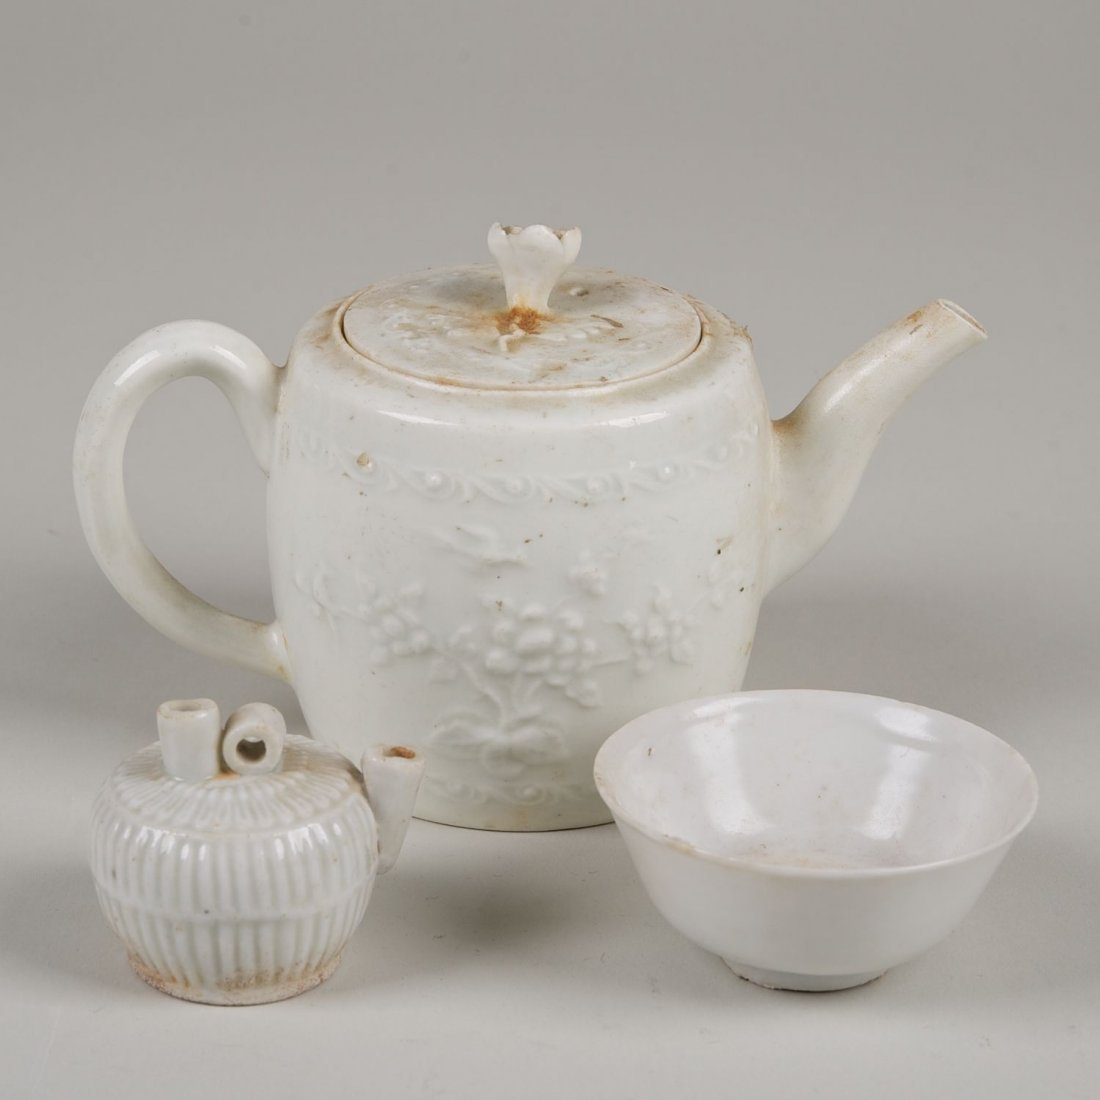 (3) pcs. Chinese blanc de chine table items